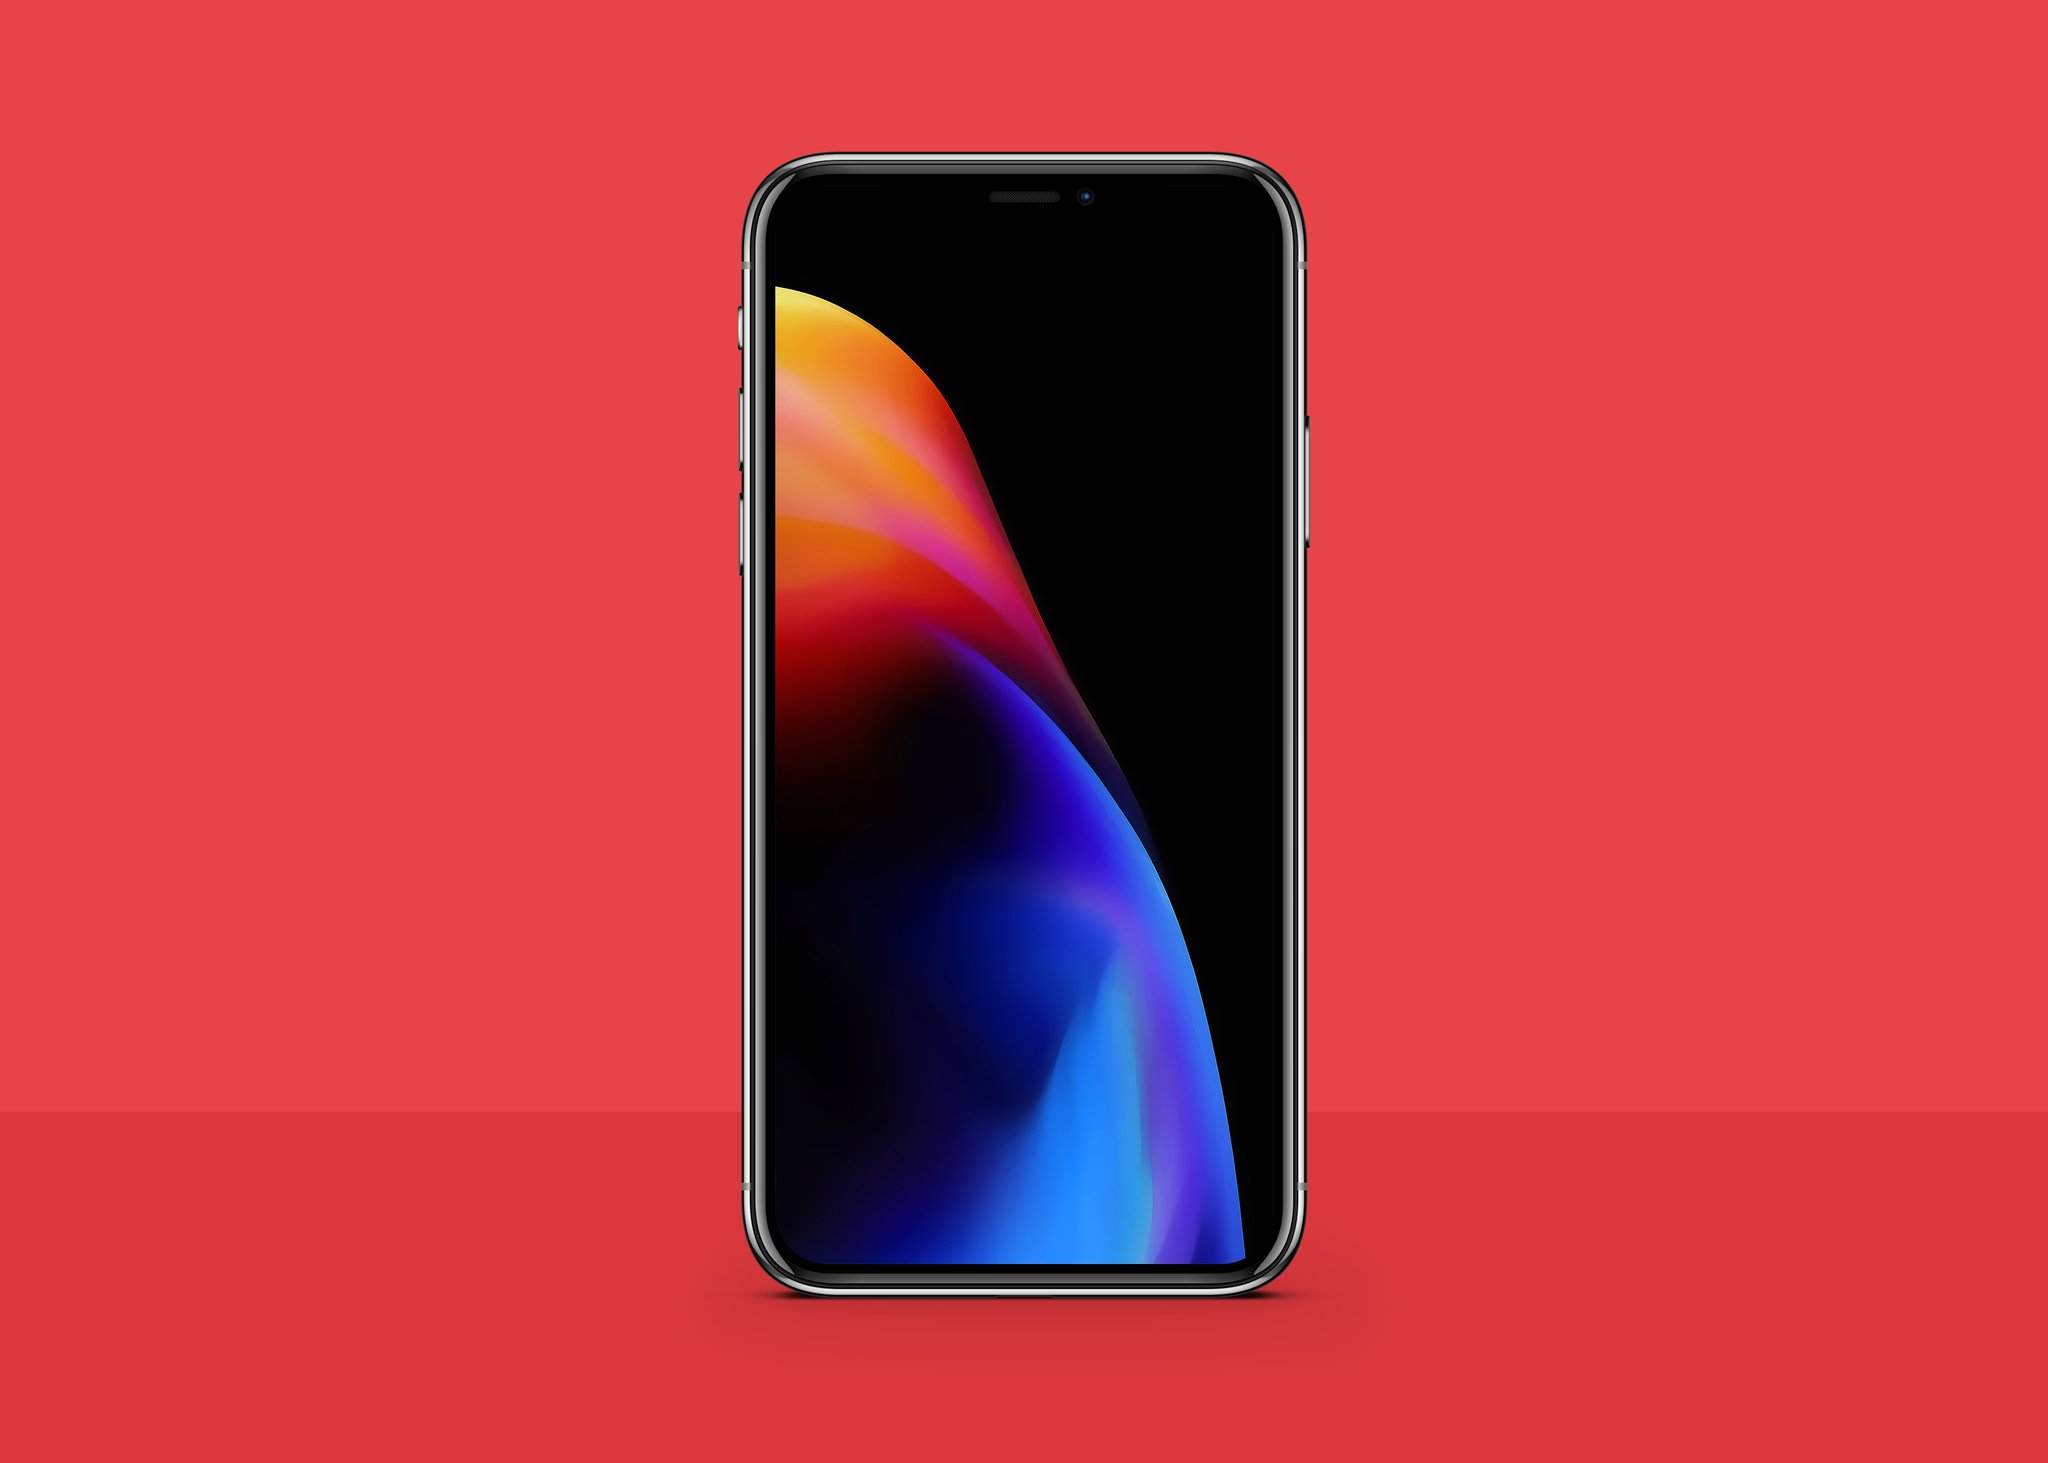 PRODUCT(RED) iPhone 8 Wallpaper - 3uTools